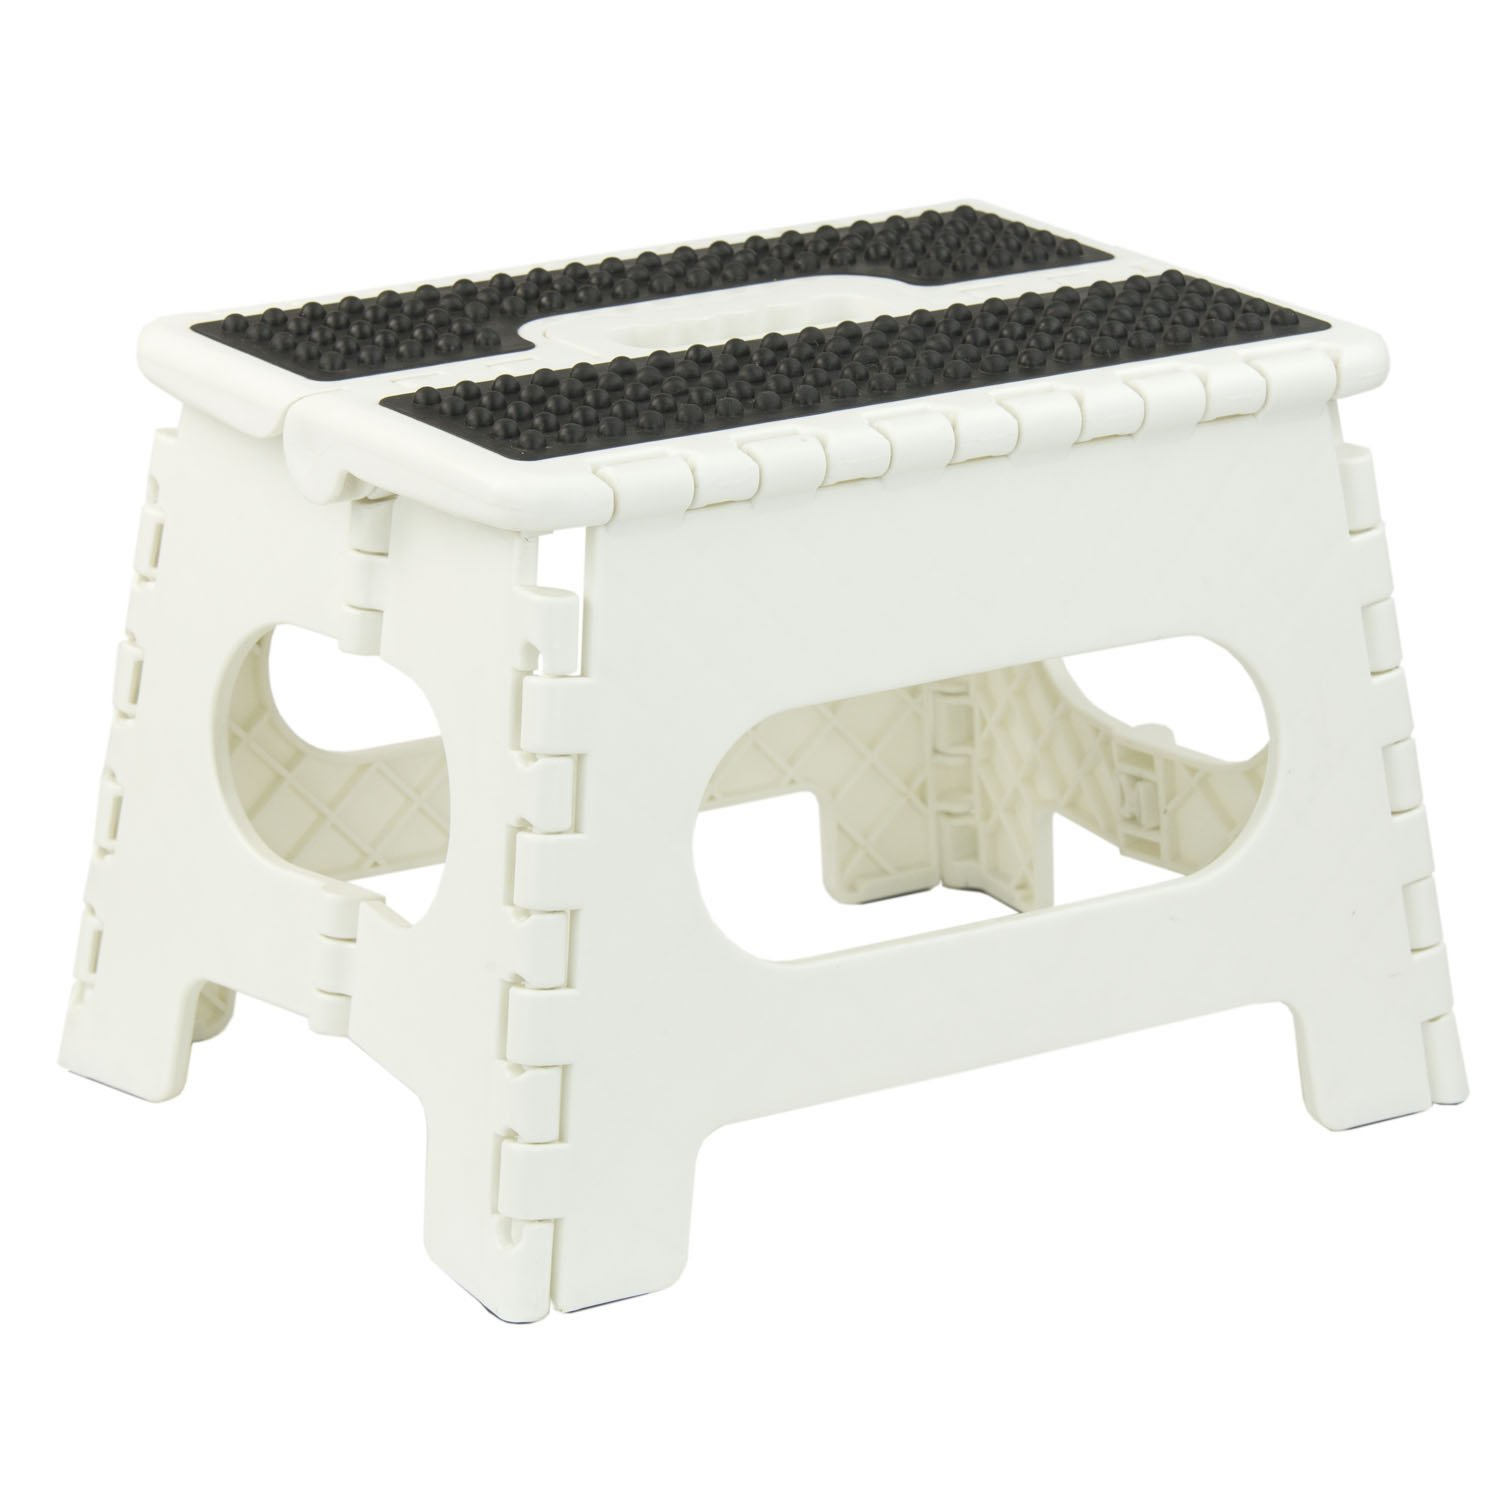 Home Basics Folding Stool with Non Slip Grip and Carrying Handle (Medium, White)